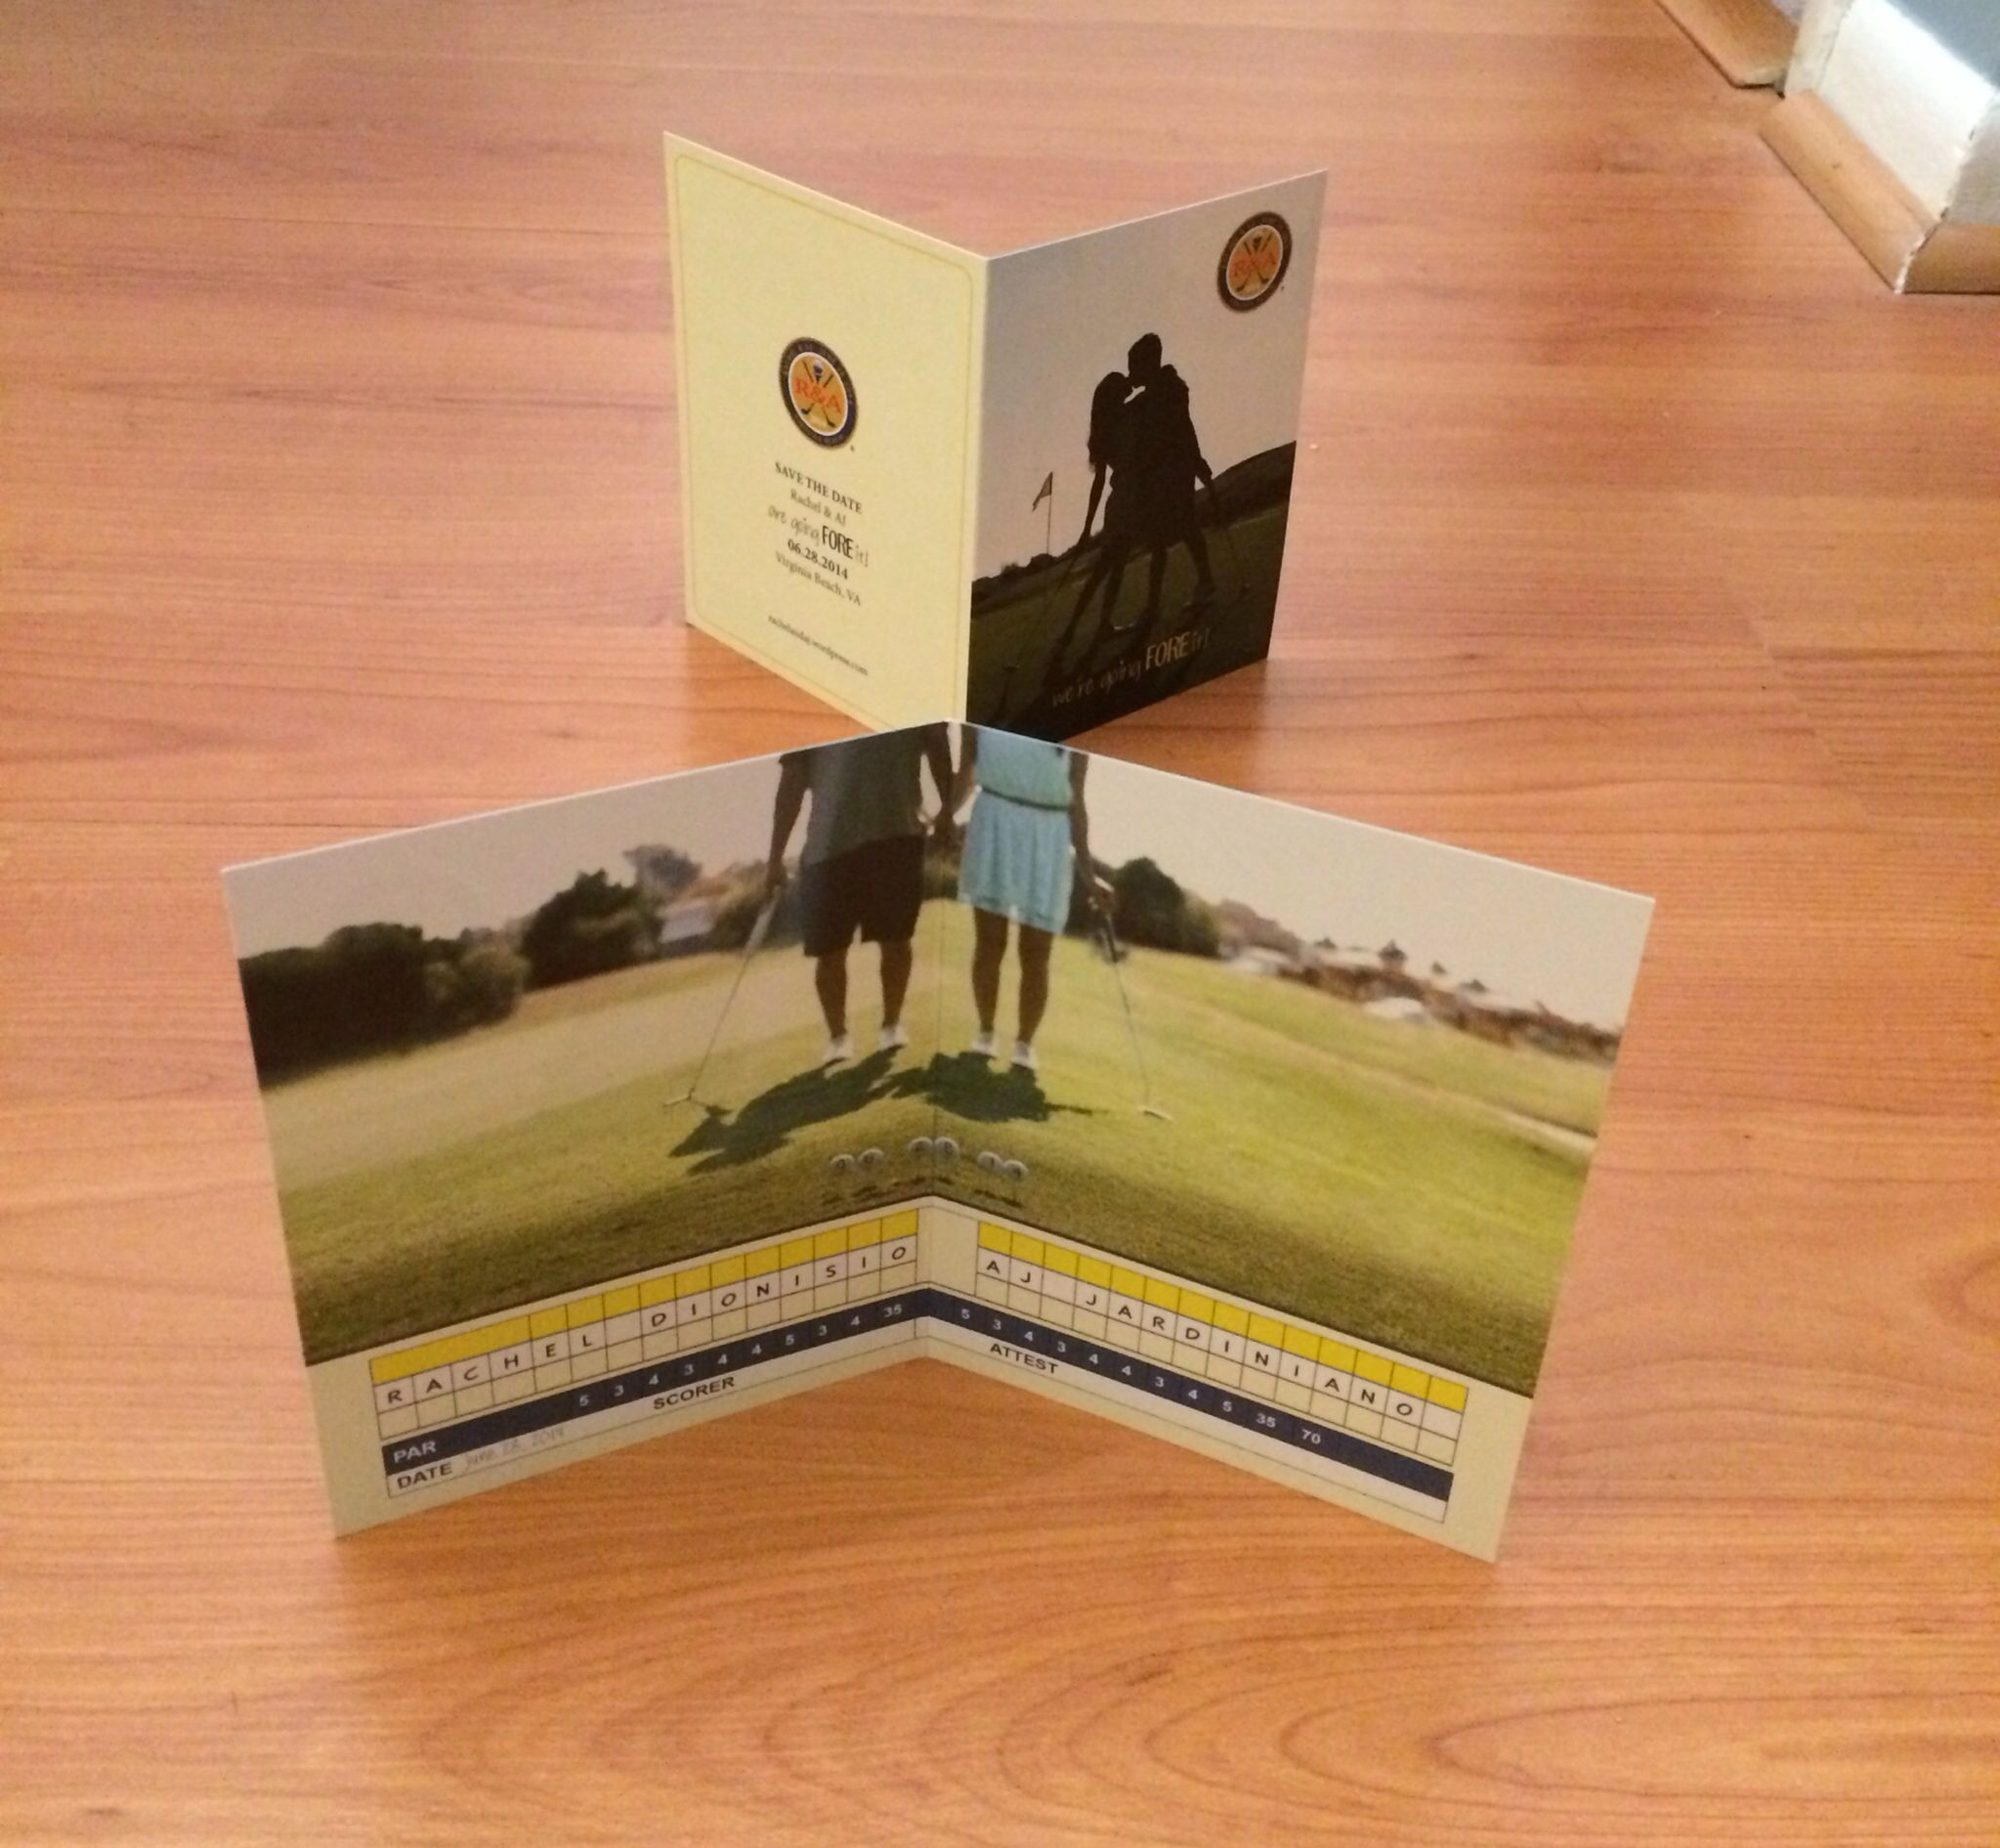 sample wording for save the date wedding cards%0A Our golf themed wedding savethedate card  We u    re going FORE